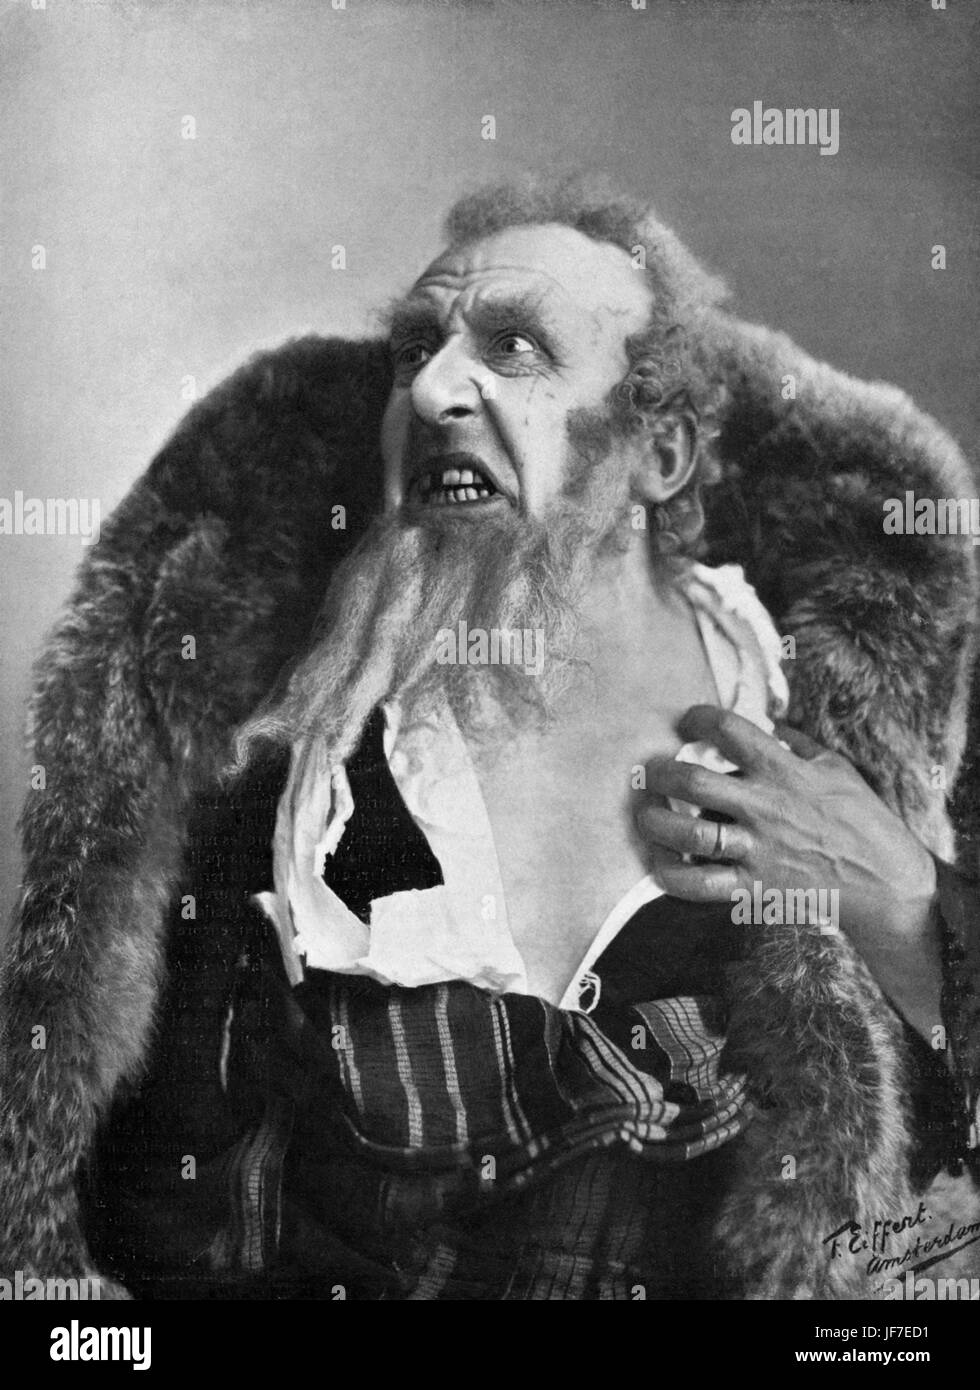 Louis Bouwmeester in the role of Shylock in William Shakespeare 's Merchant of Venice LB: Dutch actor, 5 september - Stock Image